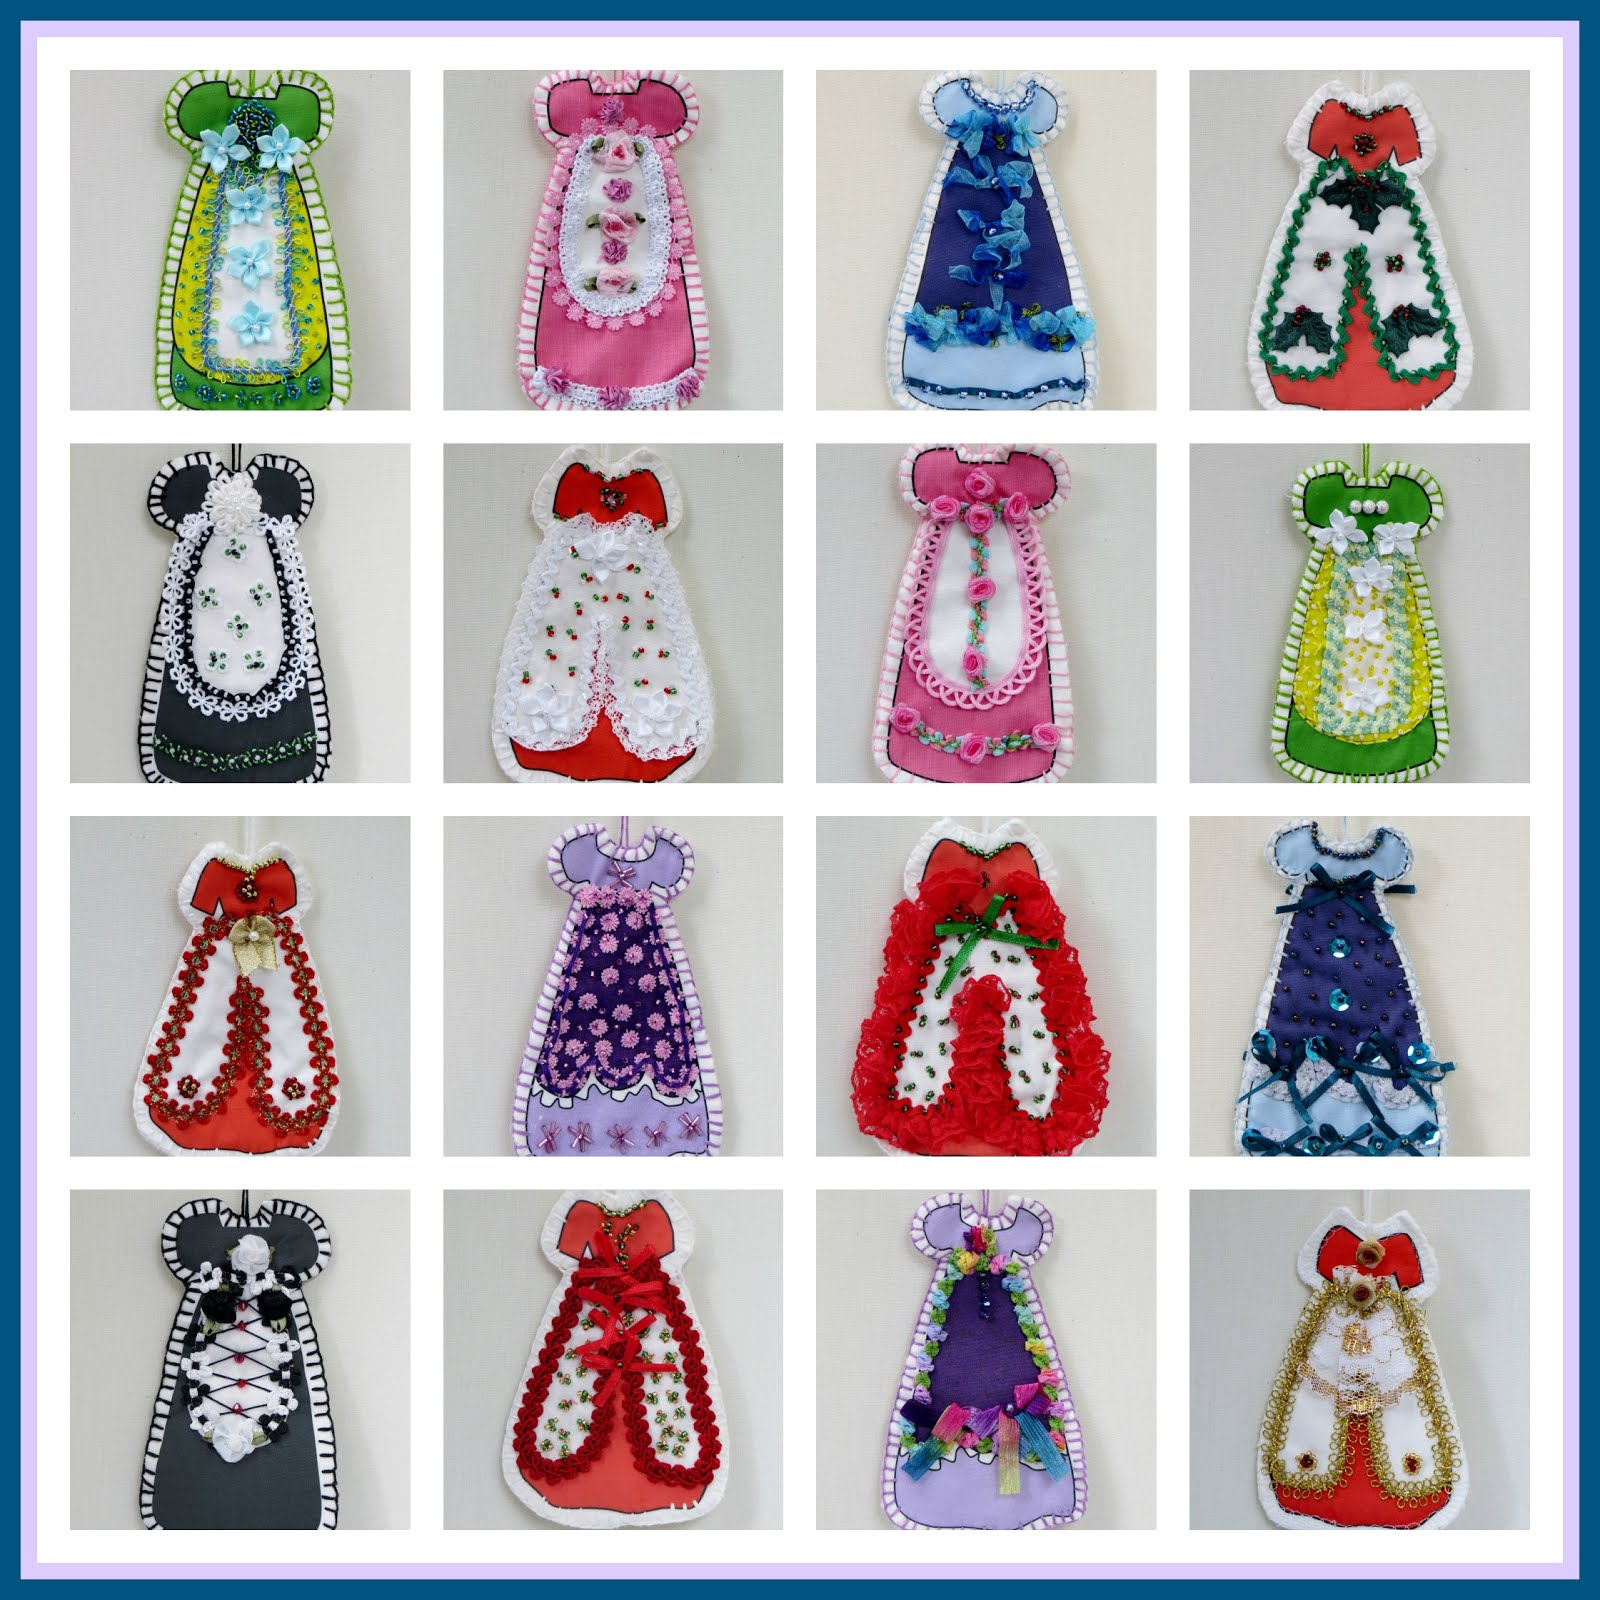 My Free How To Make My Victorian Cut and Sew Embroidered & Embellished Dress Ornaments E-Books